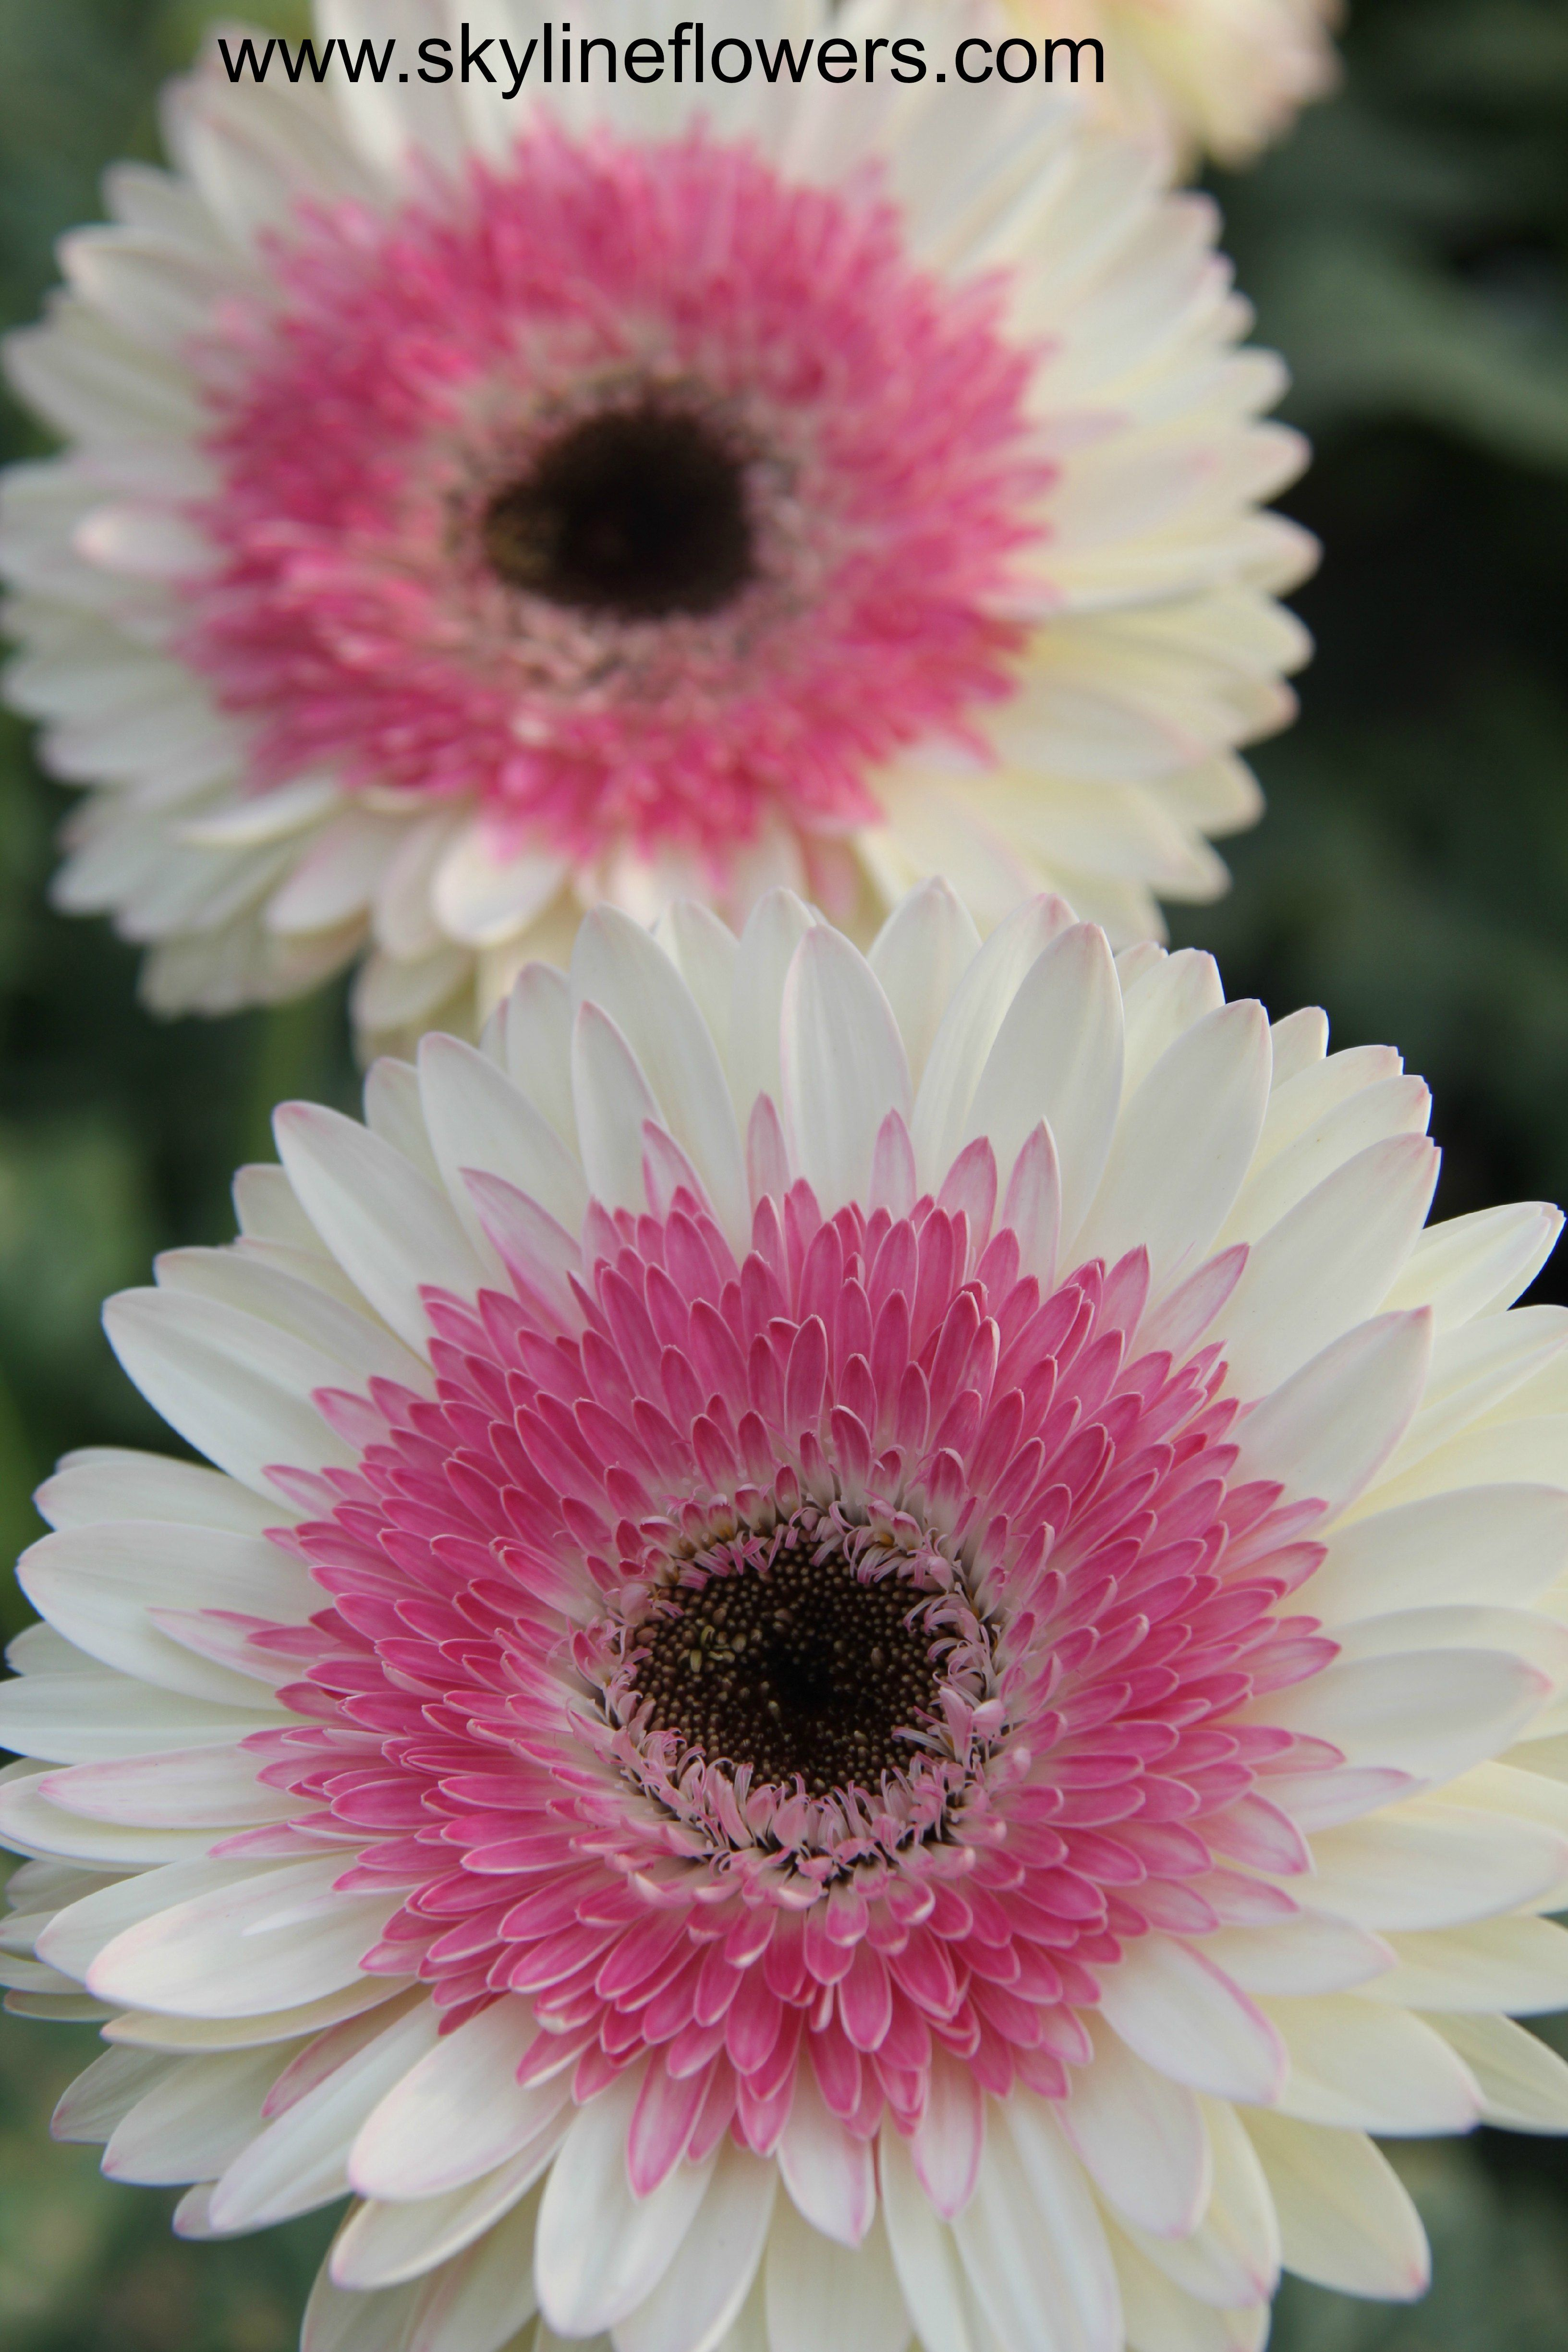 Happy Friday We Have A Number Of Bicolor Gerberas To Choose From At Skyline Flower Growers Enjoy Skylineflowers Beautiful Flowers Flowers Flower Garden